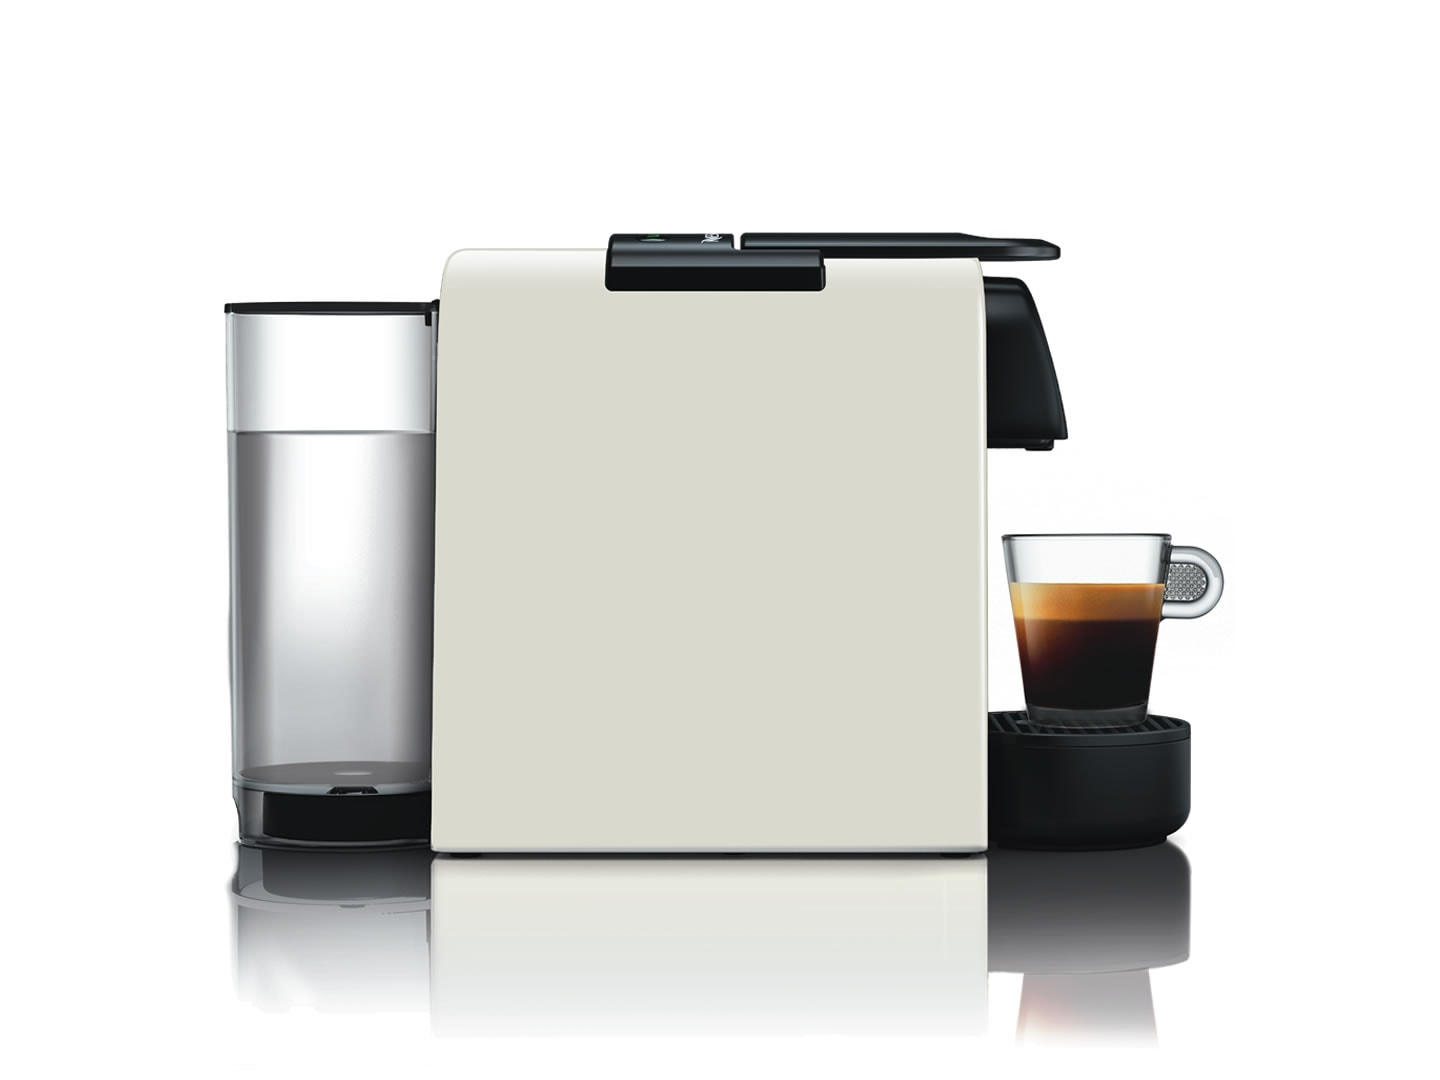 DeLonghi Nespresso Essenza Mini EN85.W SOLO Side